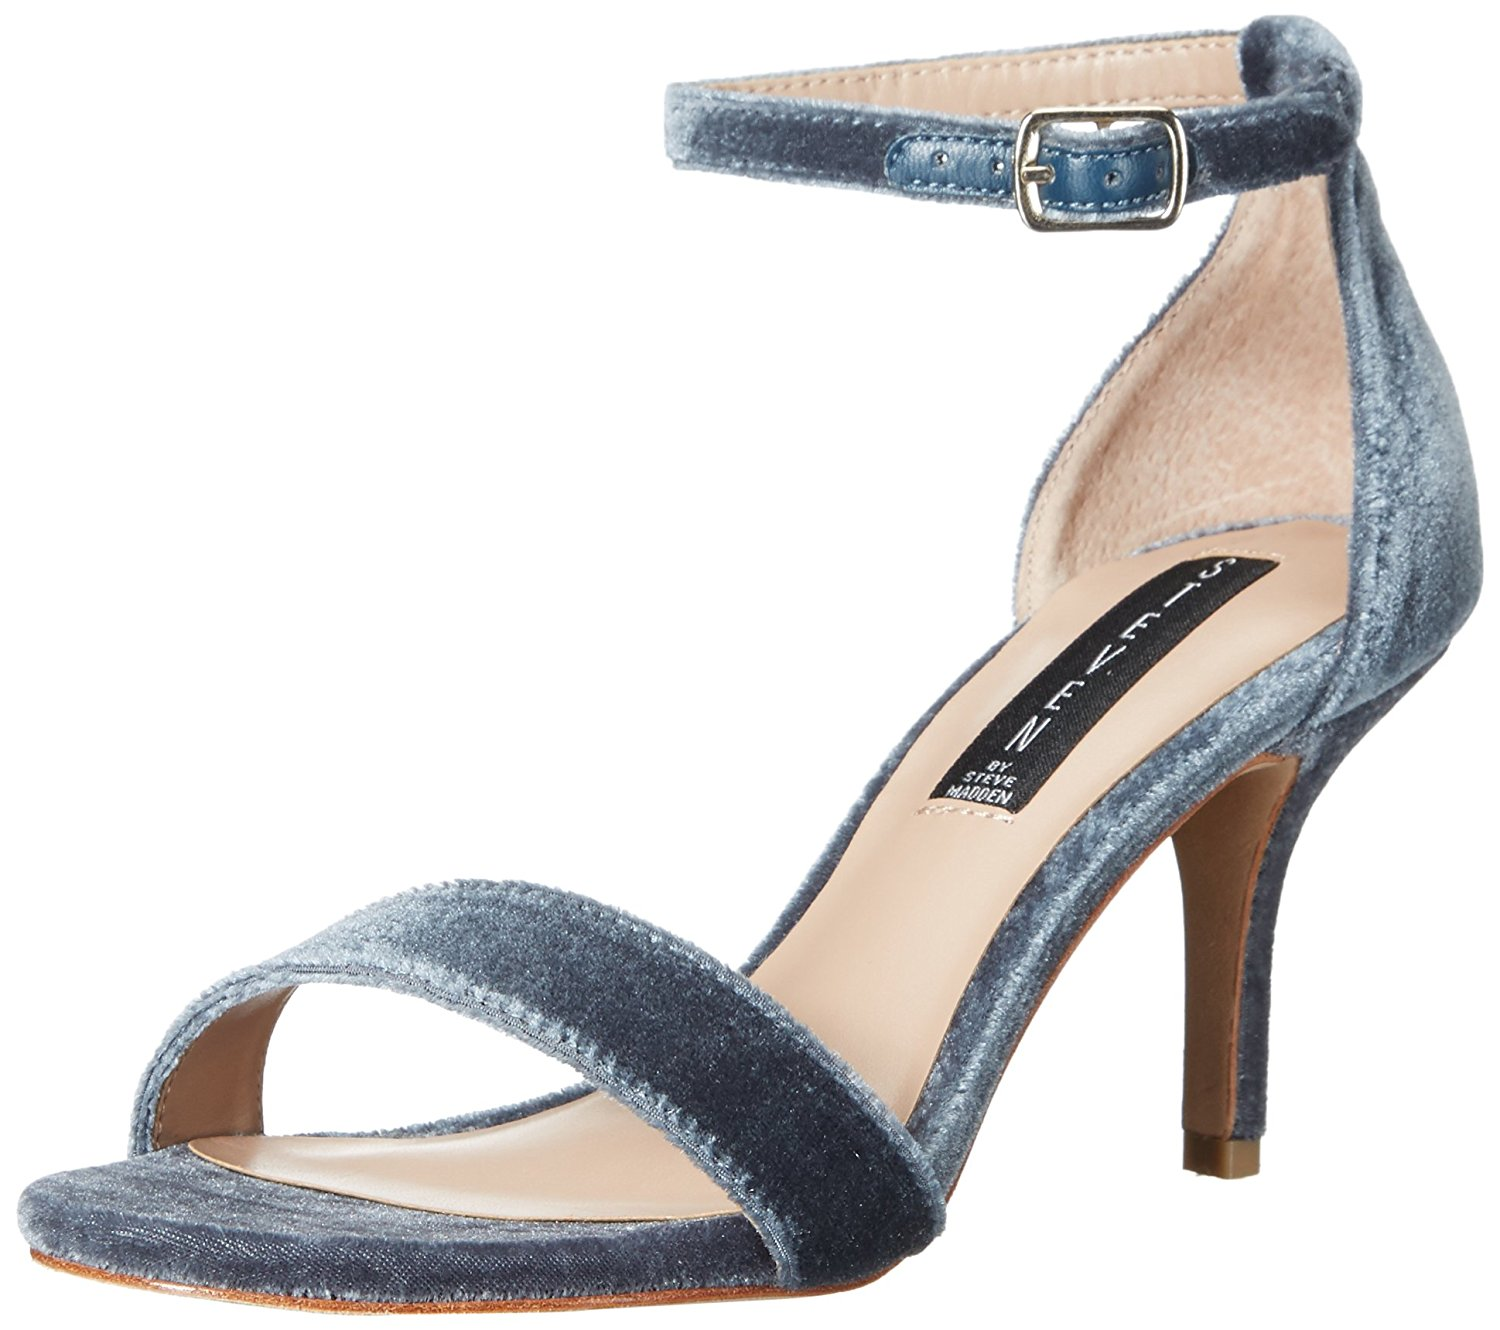 cee2e33757f STEVEN by Steve Madden Women s Viienna Dress Sandal